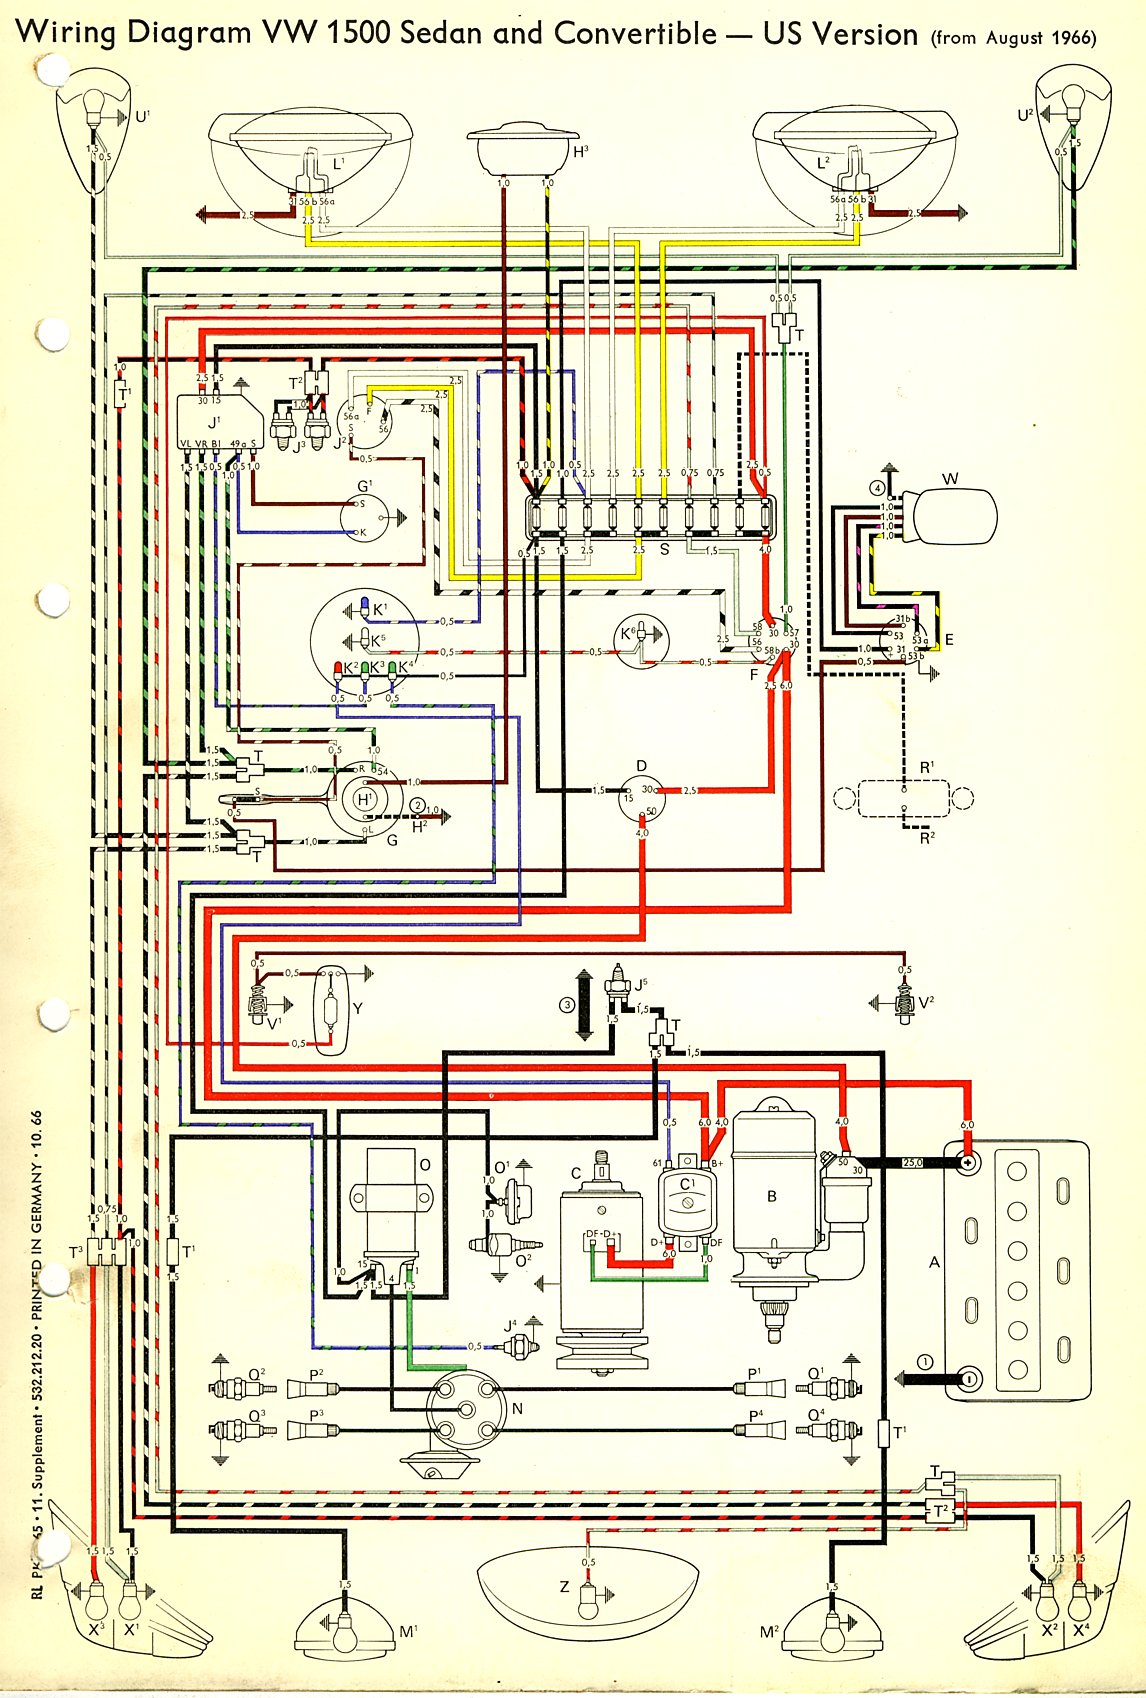 thesamba com type 1 wiring diagrams rh thesamba com 1968 vw wiring schematic 1967 vw beetle wiring diagram